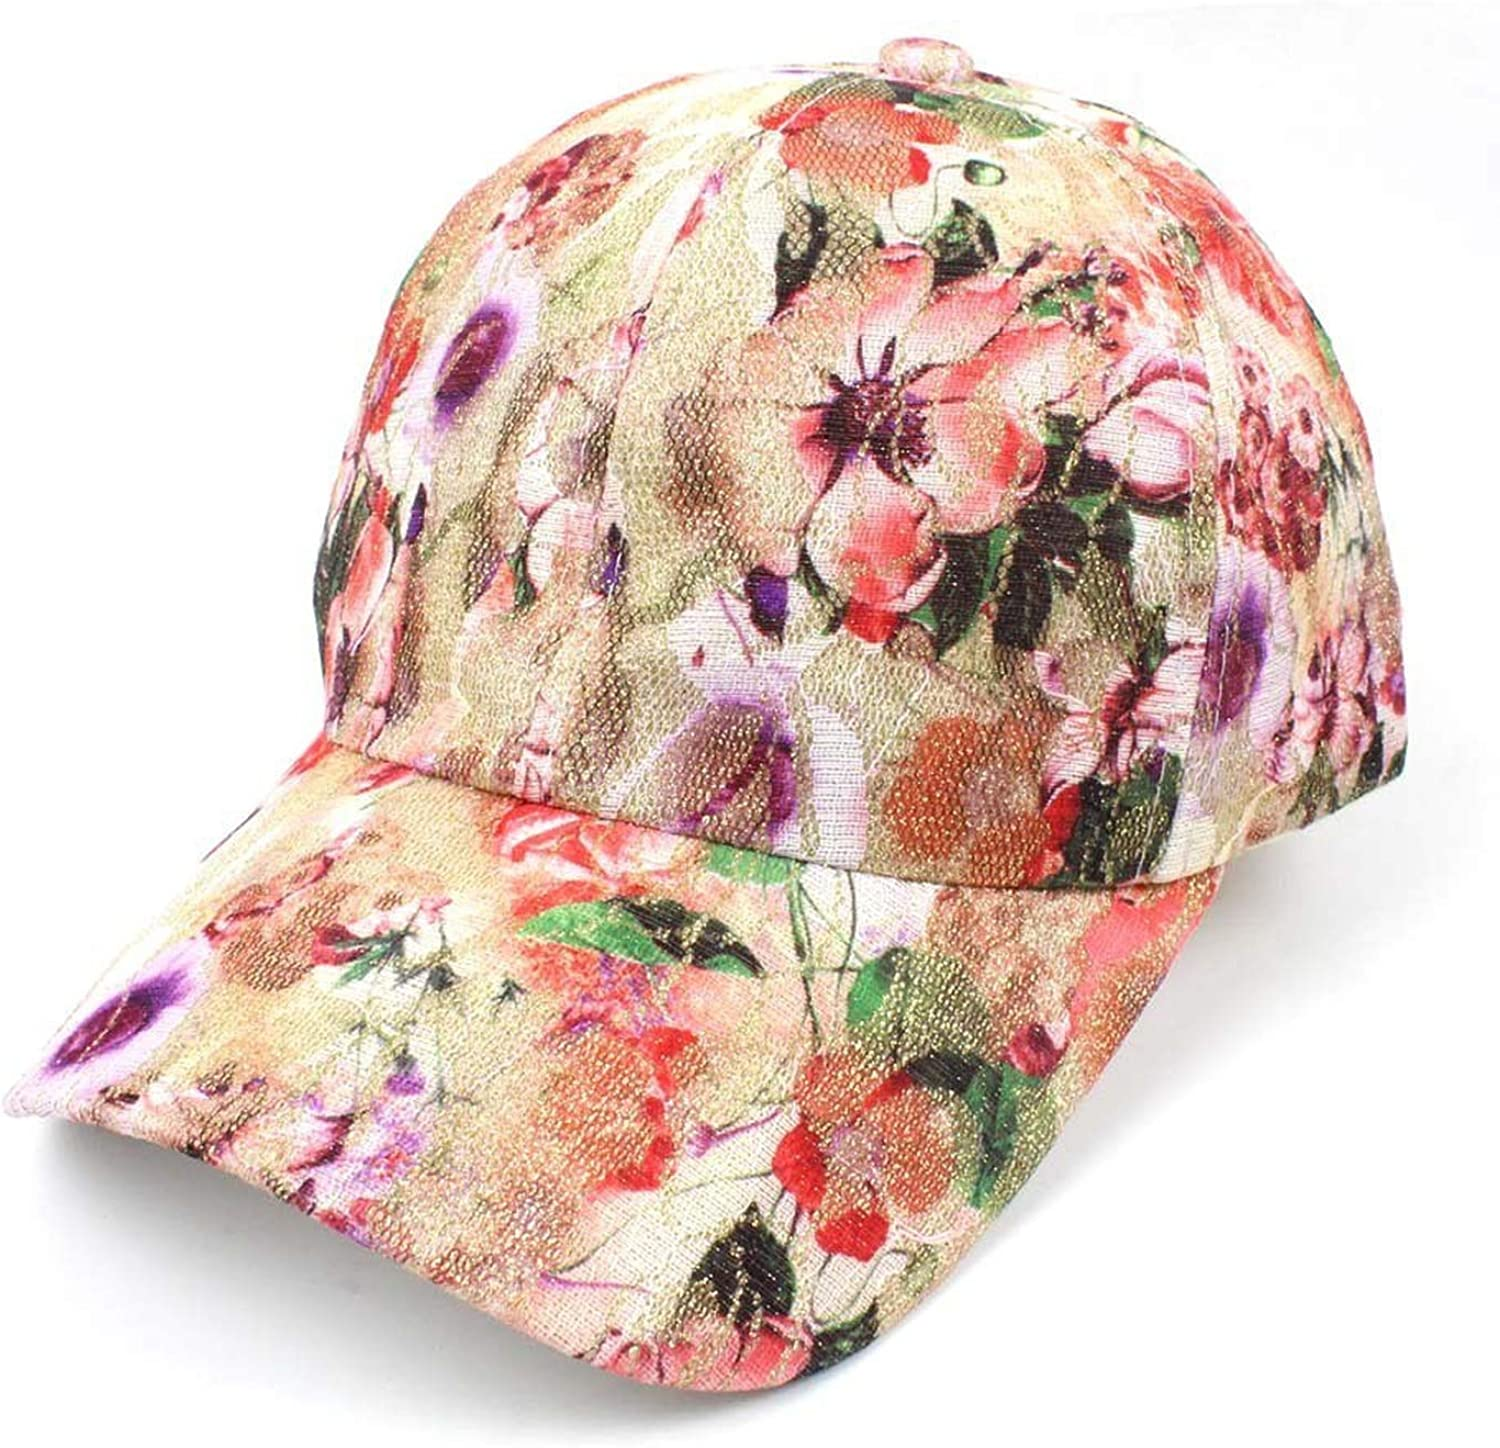 New Hot Fashion Baseball Cap Men Women Summer Caps Hip Hop Hats Solid Cap Leisure